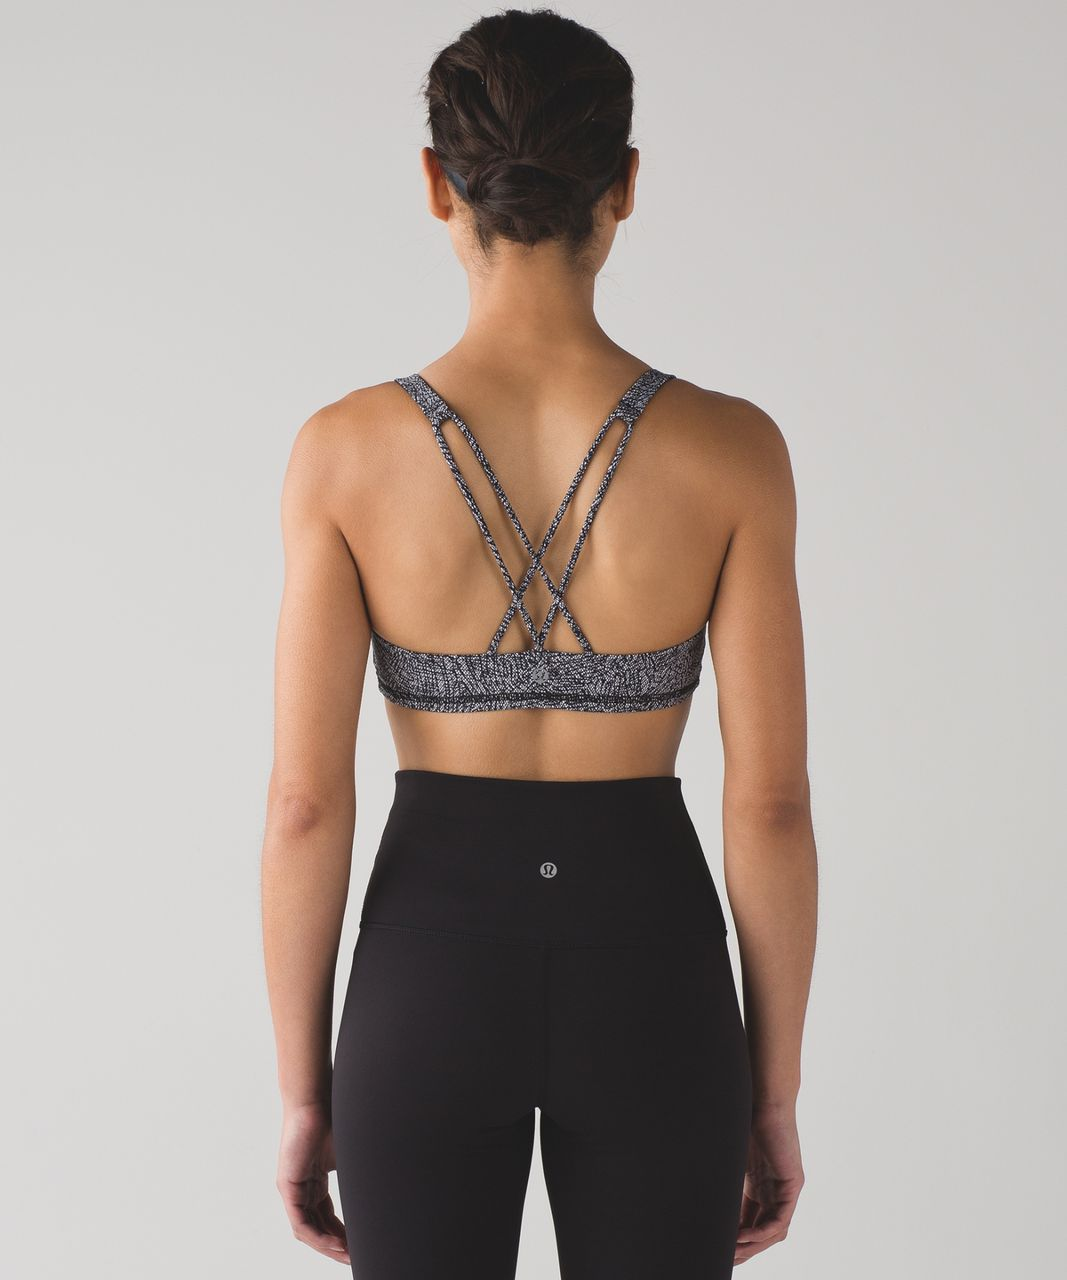 Lululemon Free To Be Bra - Line Up White Black (First Release)